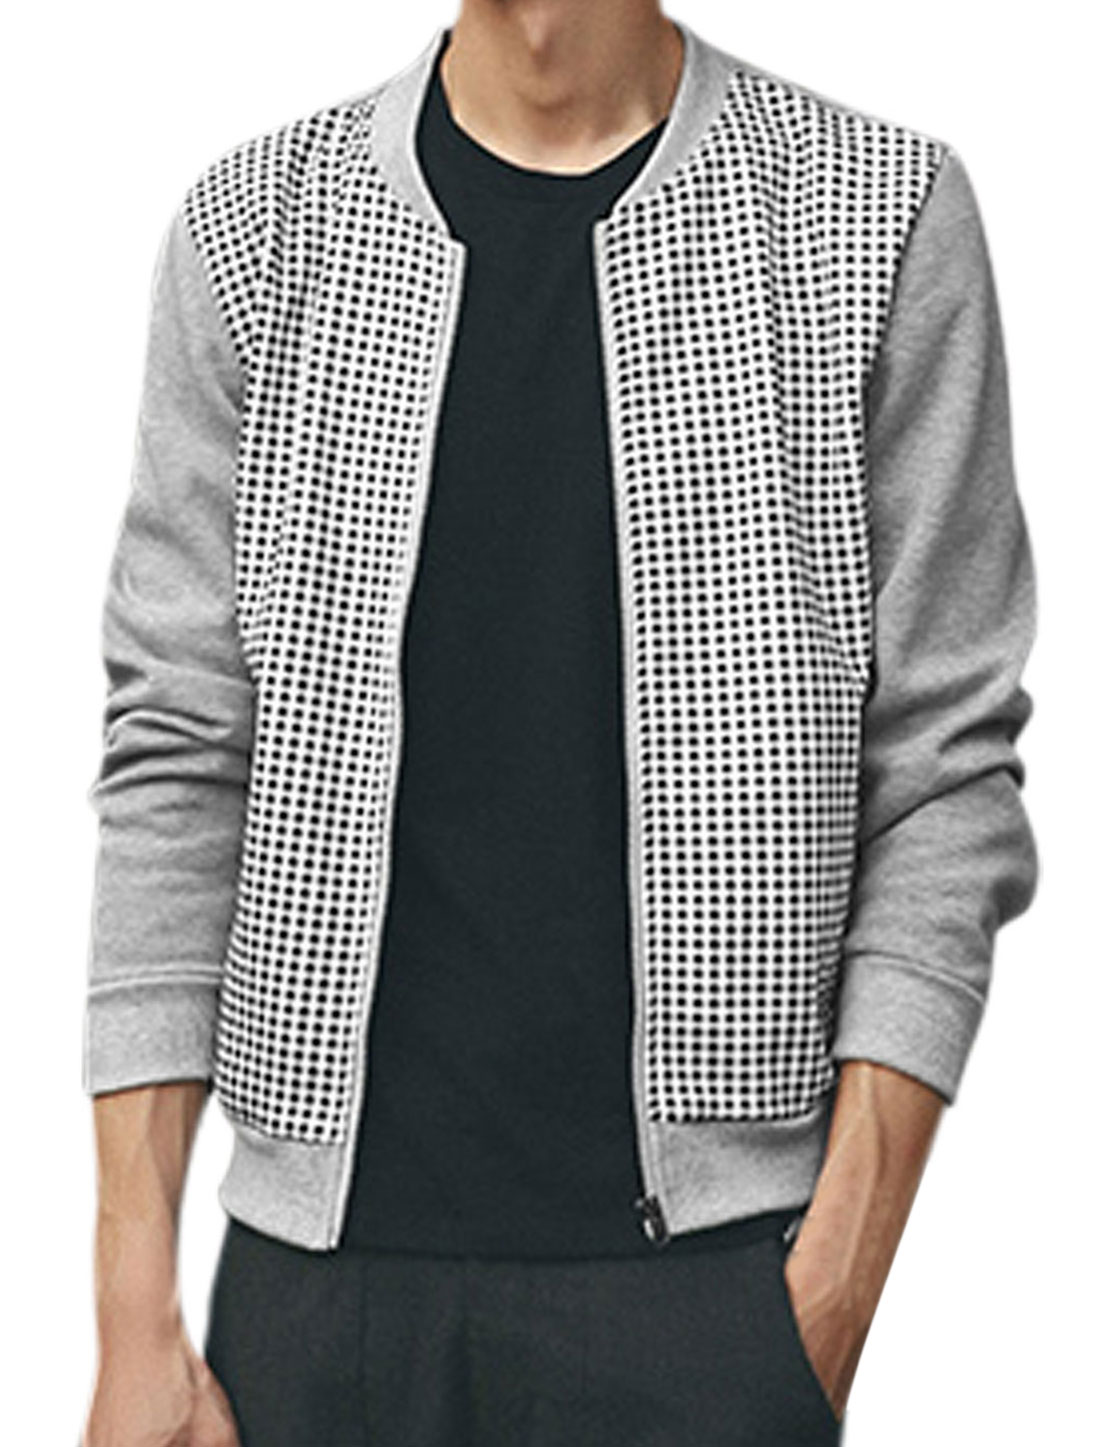 Men Houndstooth Long Sleeves Zip Closed Jacket Light Gray White M